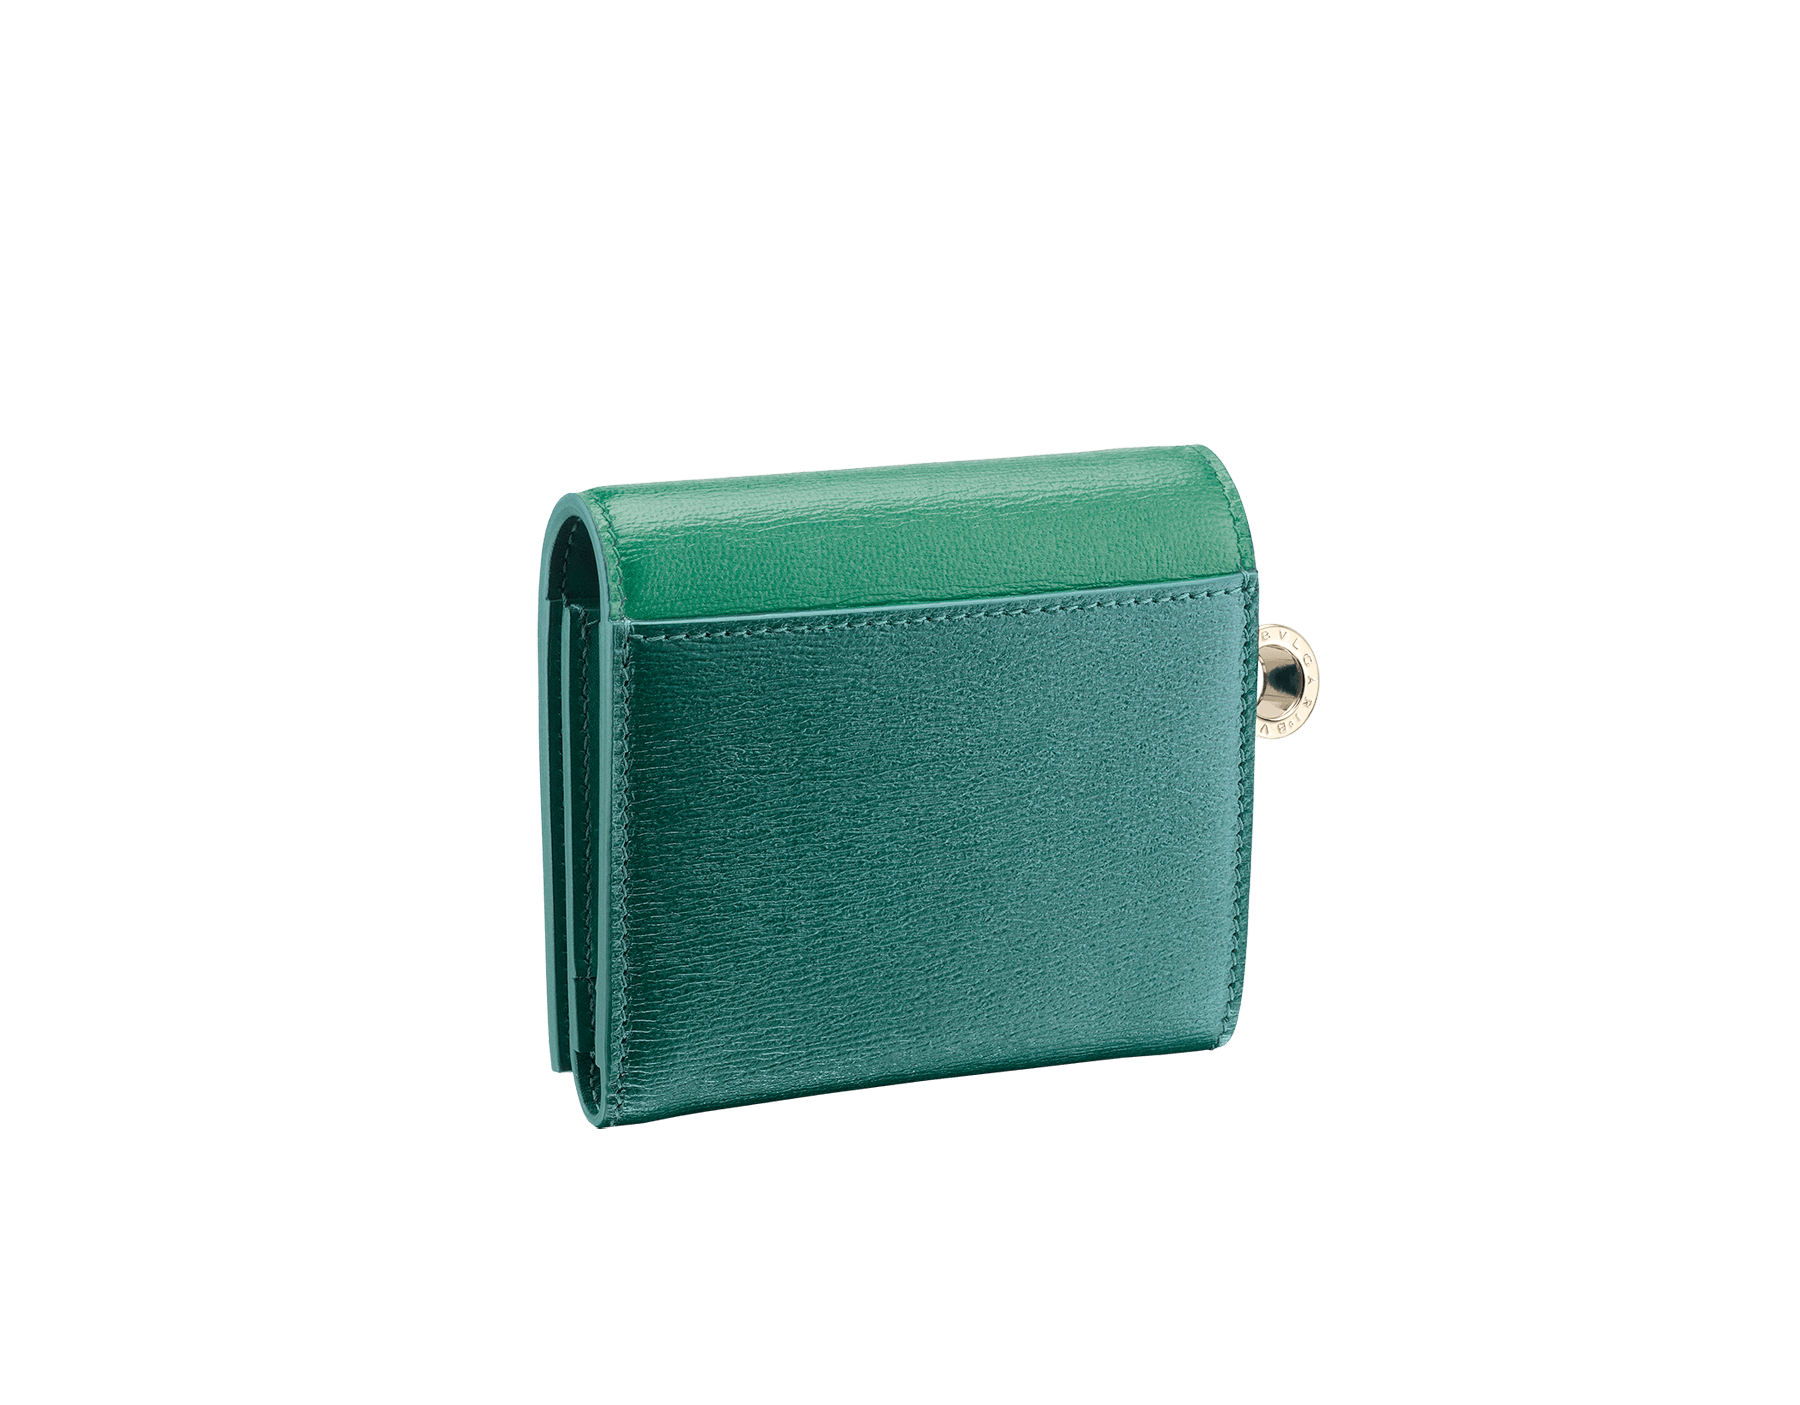 B.zero1 super compact wallet in emerald green and forest emerald goatskin. Iconic B.zero1 charm in light gold plated brass. 289138 image 3